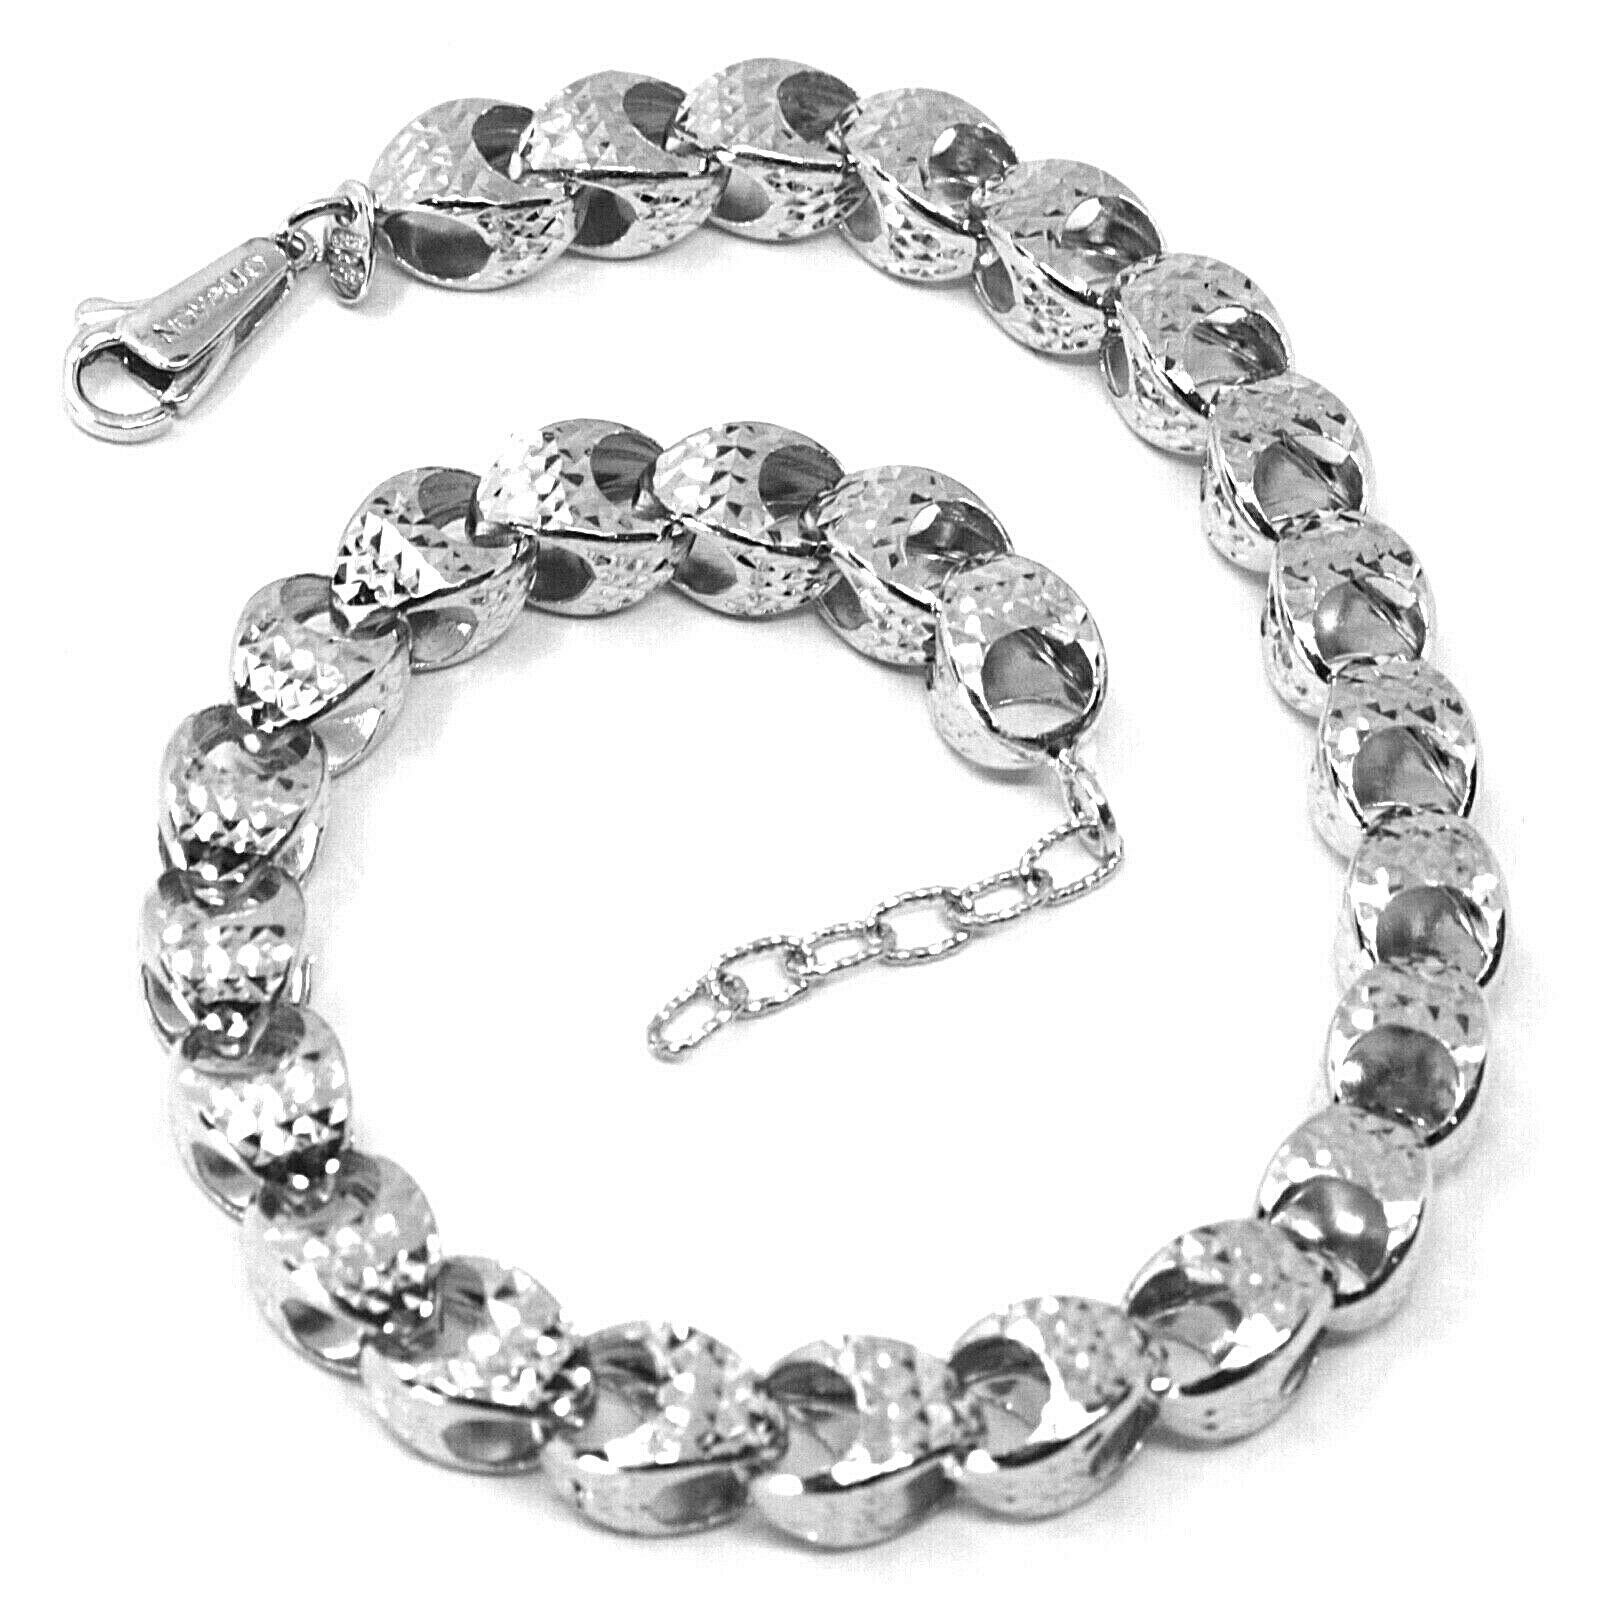 Primary image for 18K WHITE GOLD BRACELET, BIG ROUNDED DIAMOND CUT OVAL DROPS 6 MM, ROUNDED